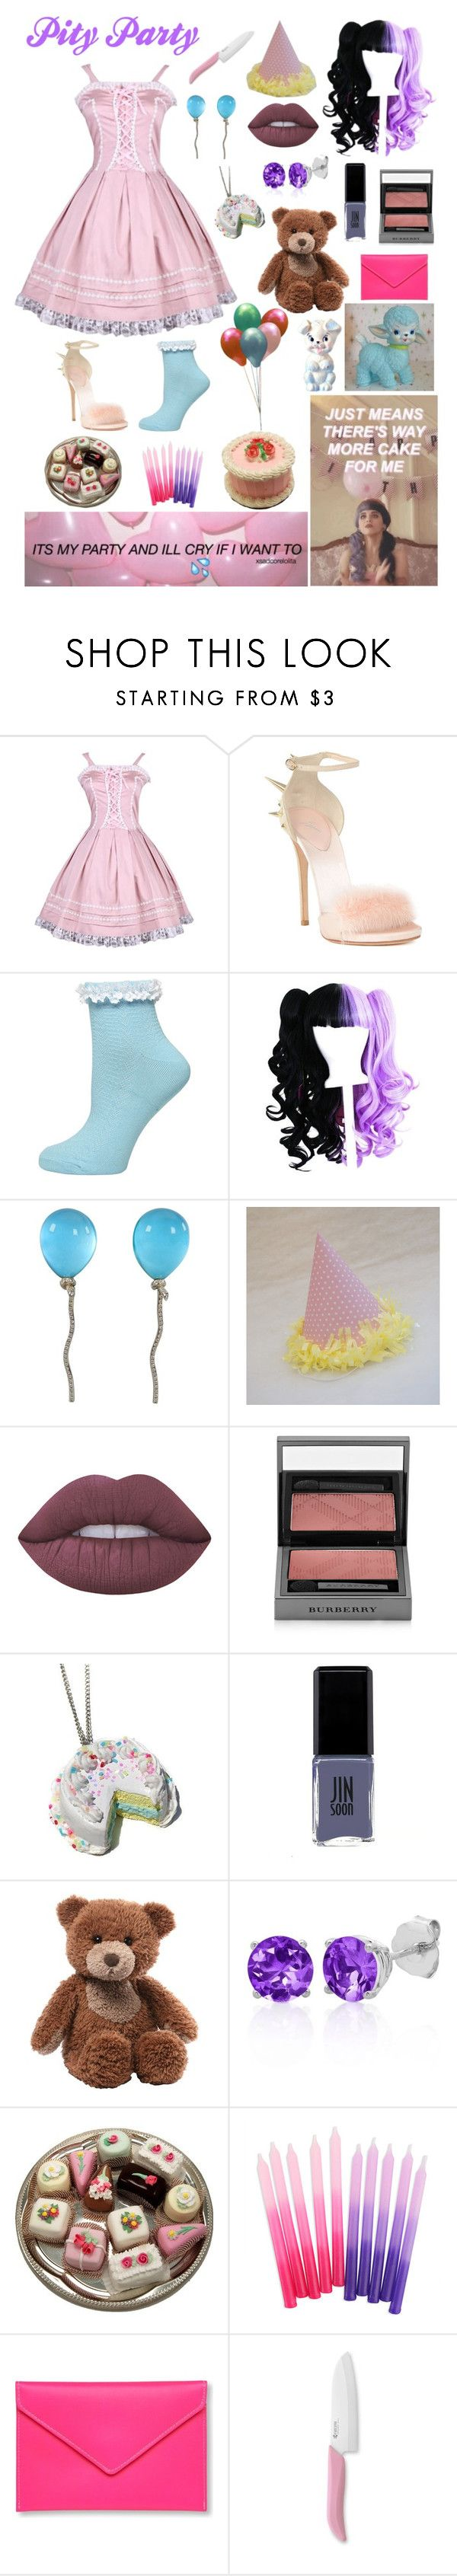 """Pity Party - Melanie Martinez"" by ender1027 ❤ liked on Polyvore featuring Giuseppe Zanotti, Dorothy Perkins, Vhernier, Lime Crime, Burberry, JINsoon, Gund, Belk & Co., Under Cover and Kyocera"